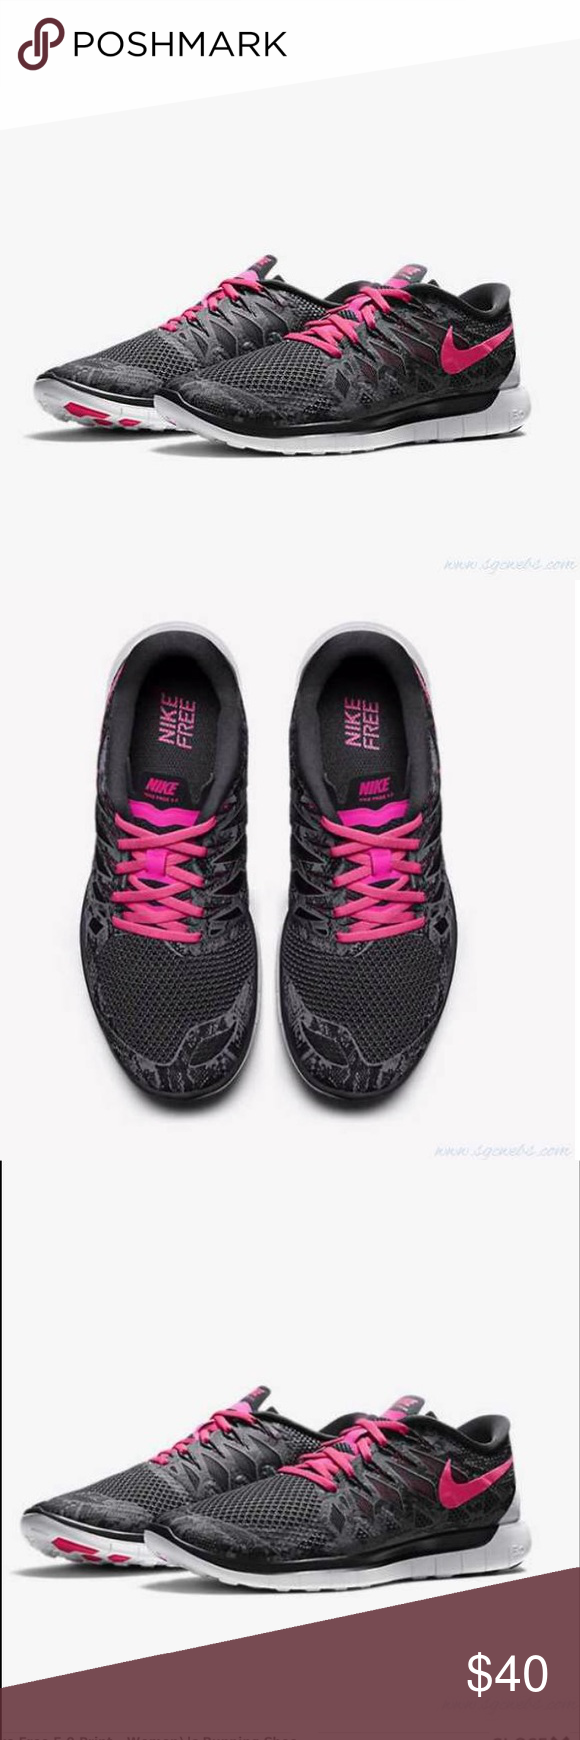 06d512de33149 NIKE FREE RUN 5.0 The Nike Free 5.0 Print Women s Running Shoe combines a  highly flexible